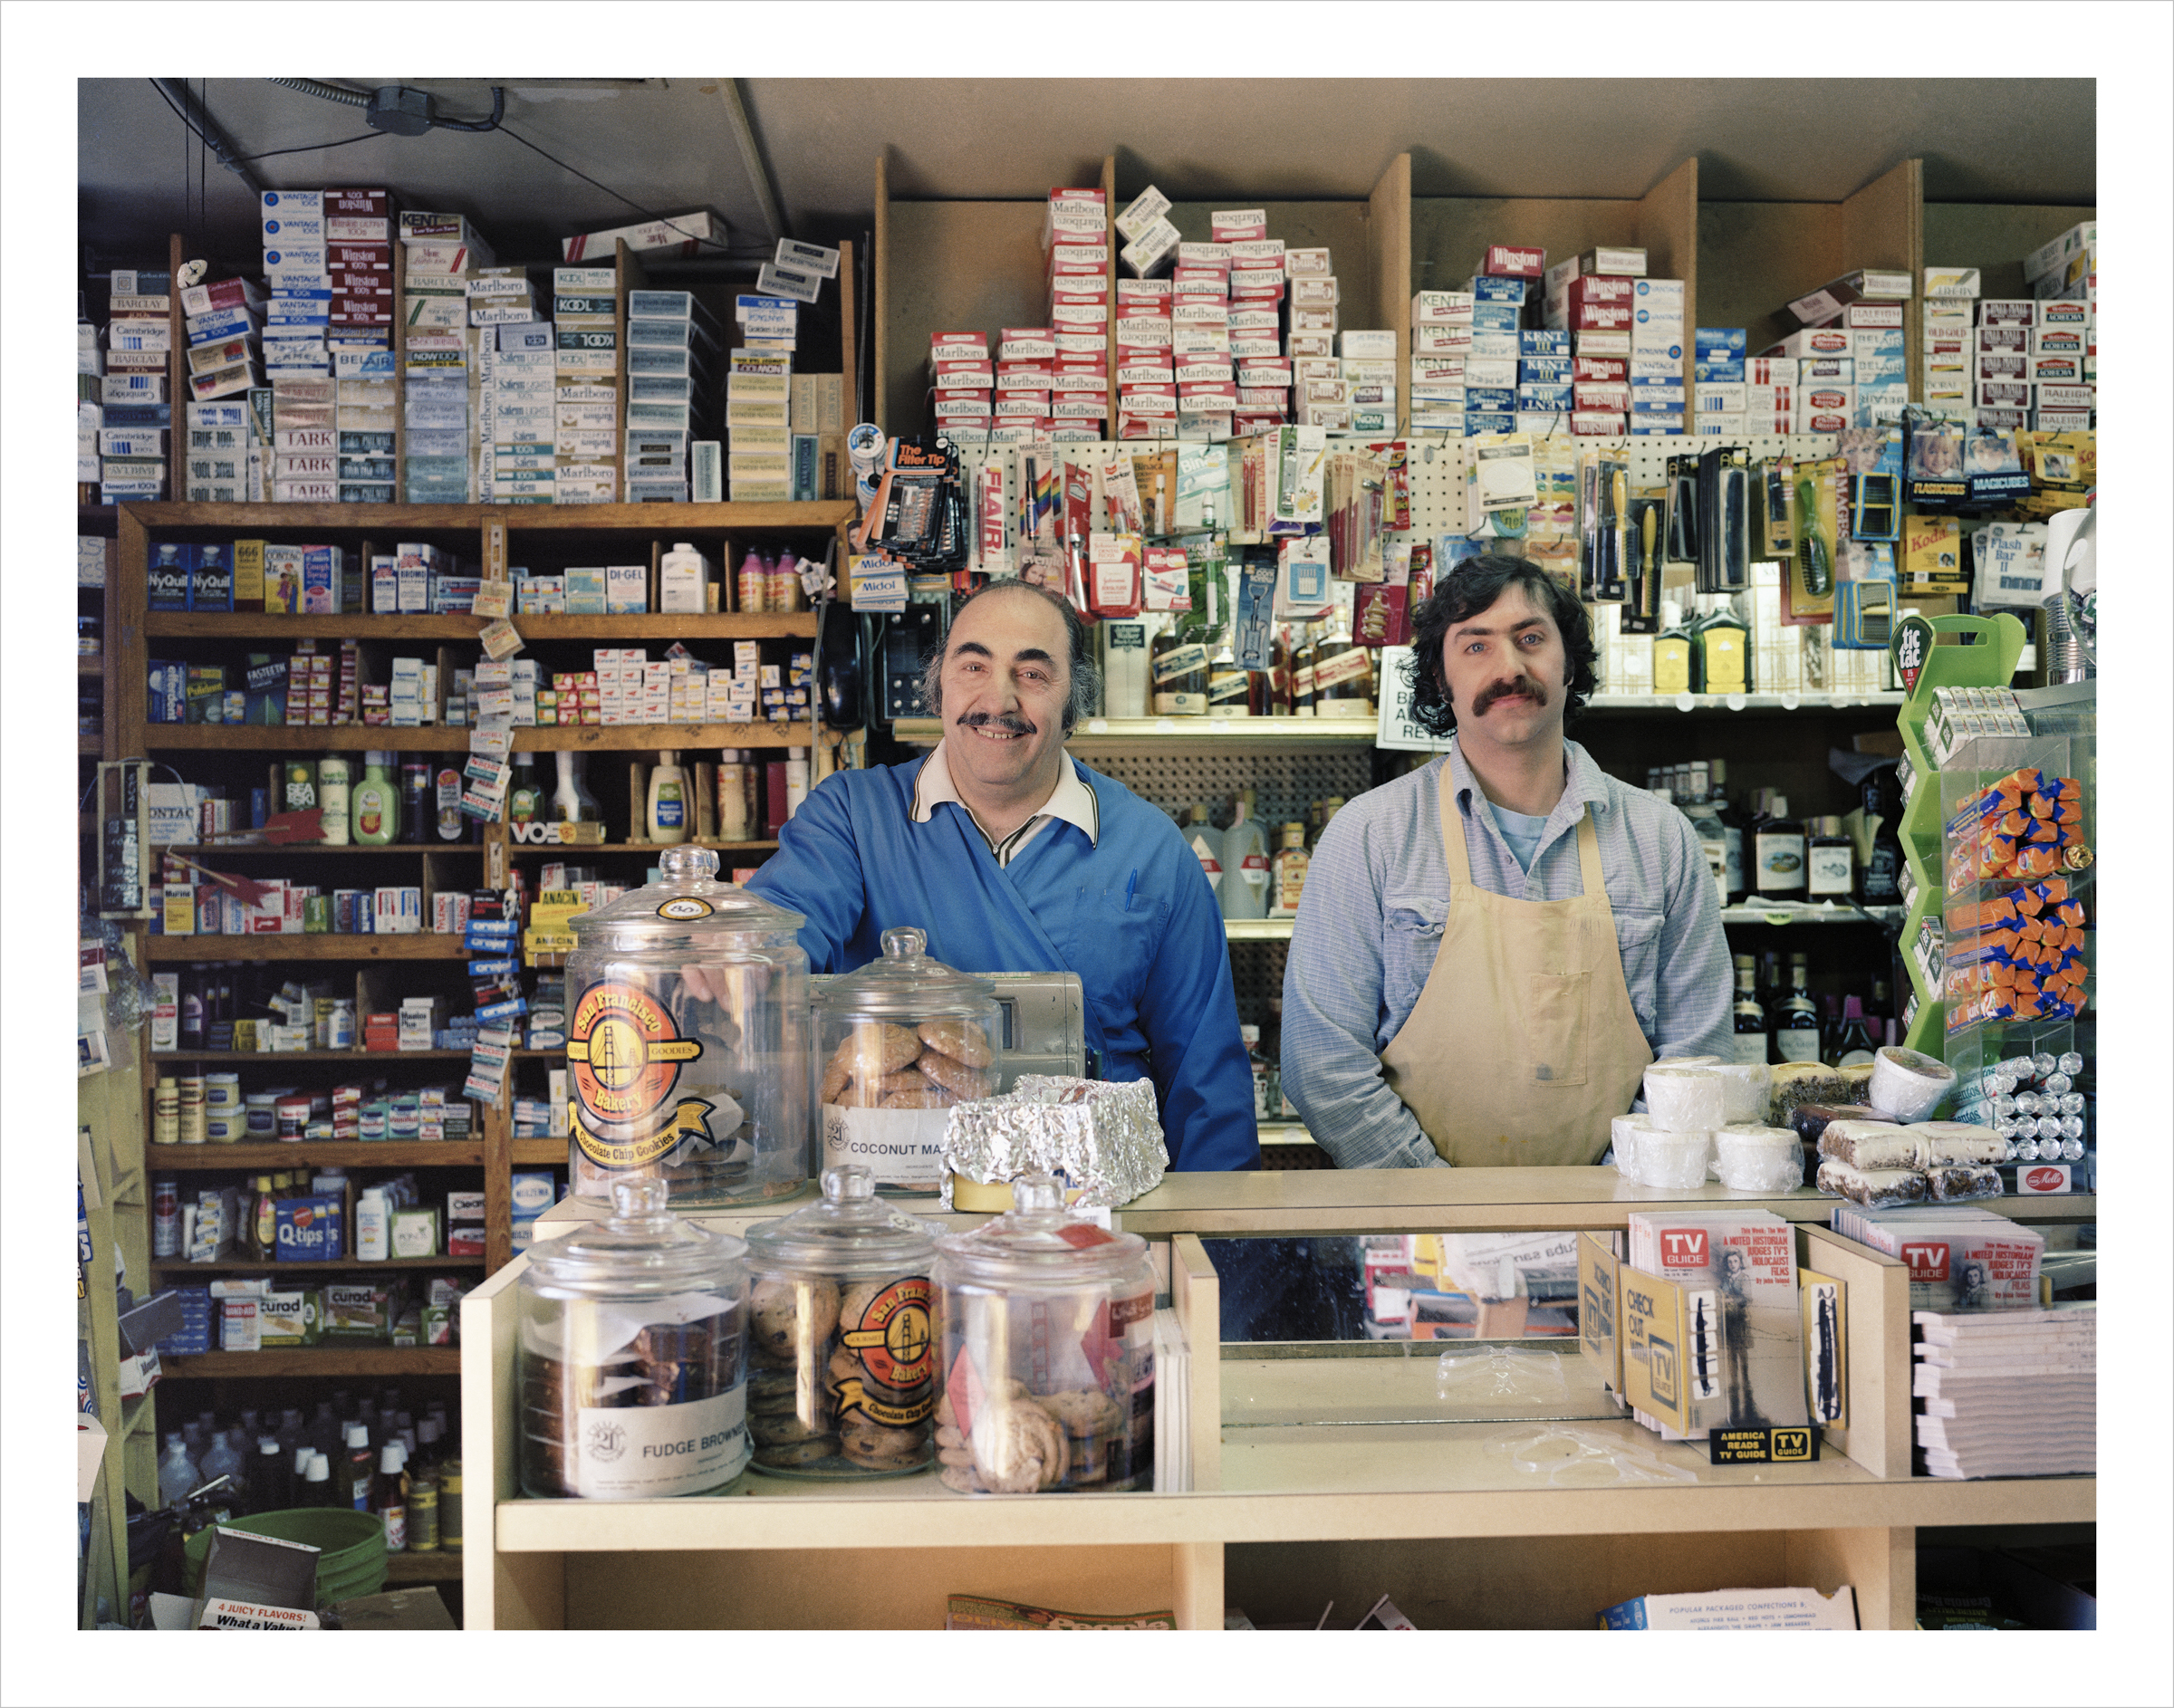 Ted Zouzounis and his son, David, at Ted's Market, 1530 Howard Street, 1982 Archival Pigment Print, 2016 16 x 20 inches, edition of 5 20 x 24 inches, edition of 2 30 x 40 inches, edition of 2